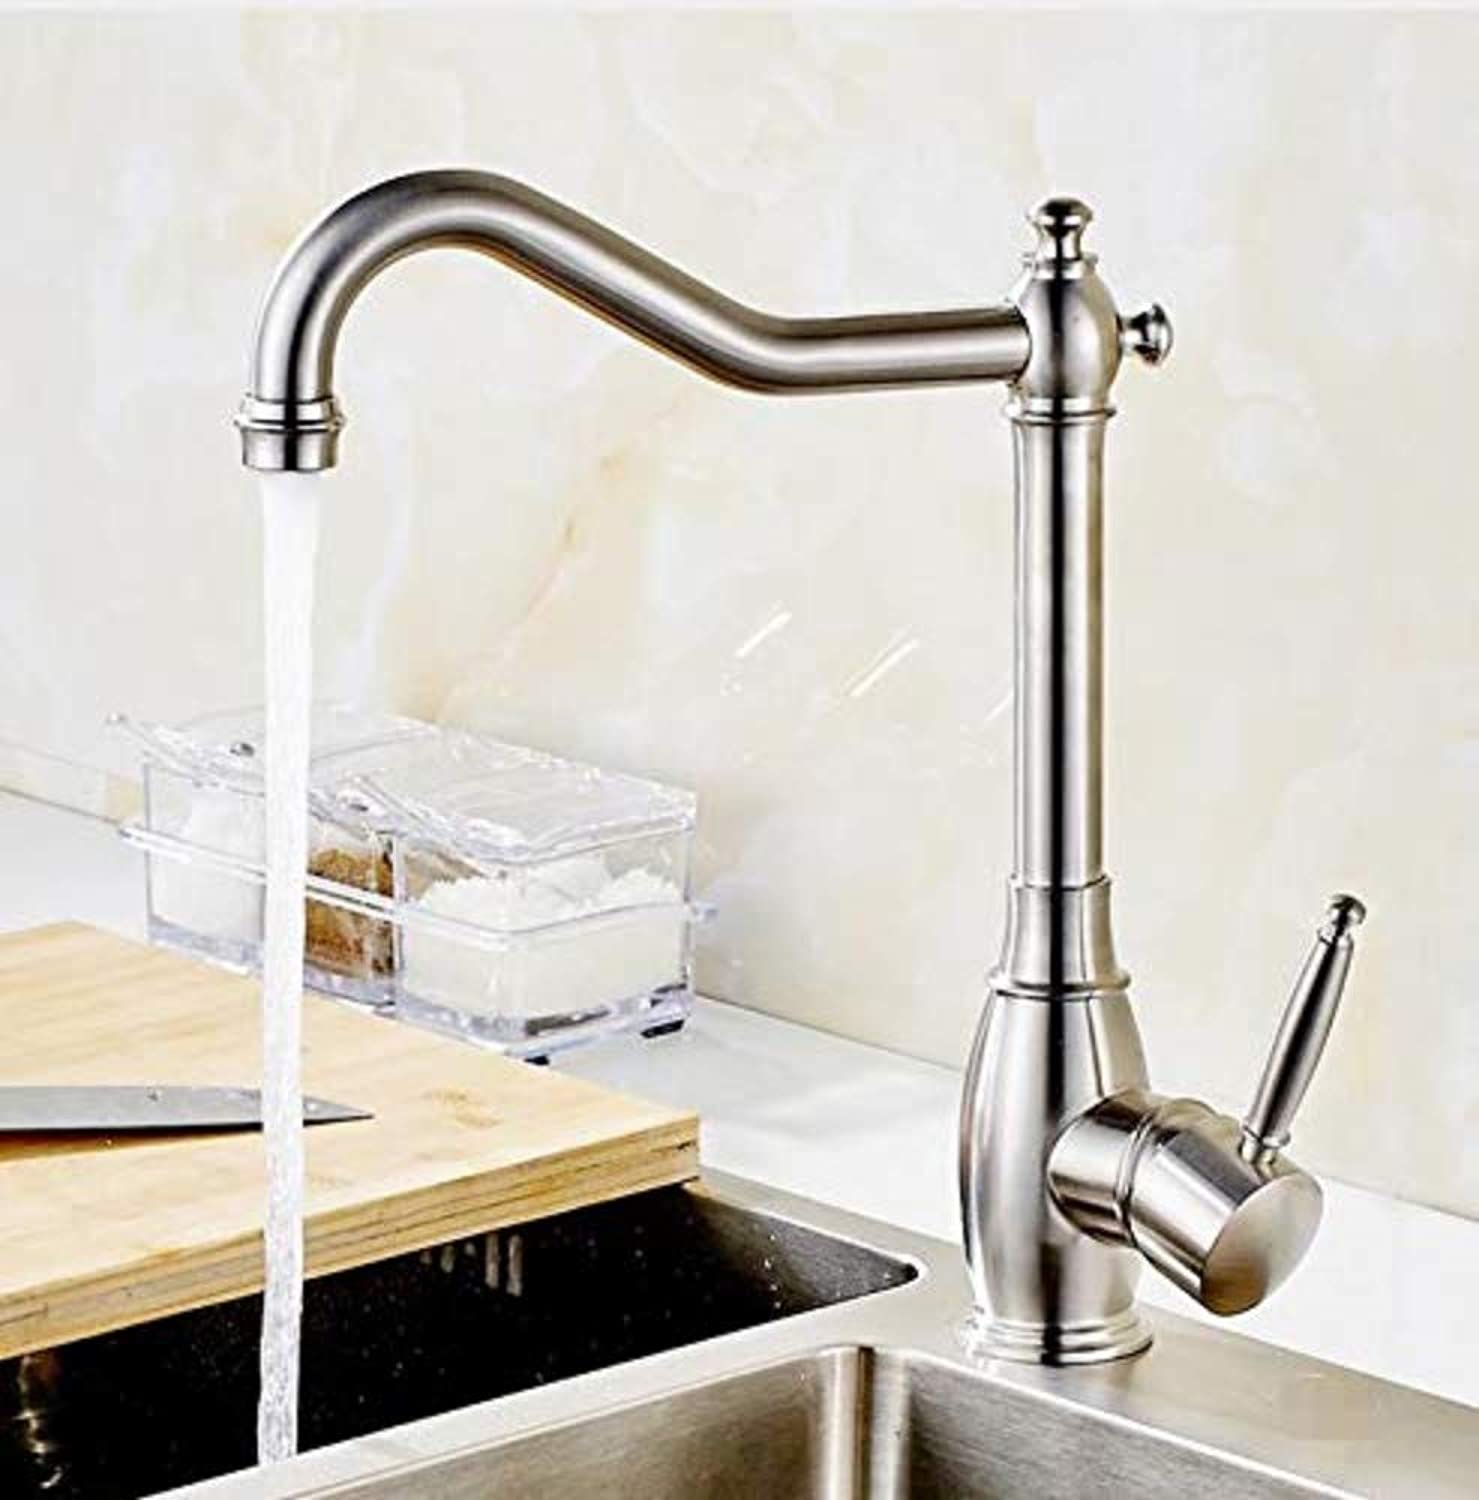 Bathroom Sink Basin Lever Mixer Tap 304 Stainless Steel Cold Hot Single Hole Mixer Taps for Kitchen Sinks